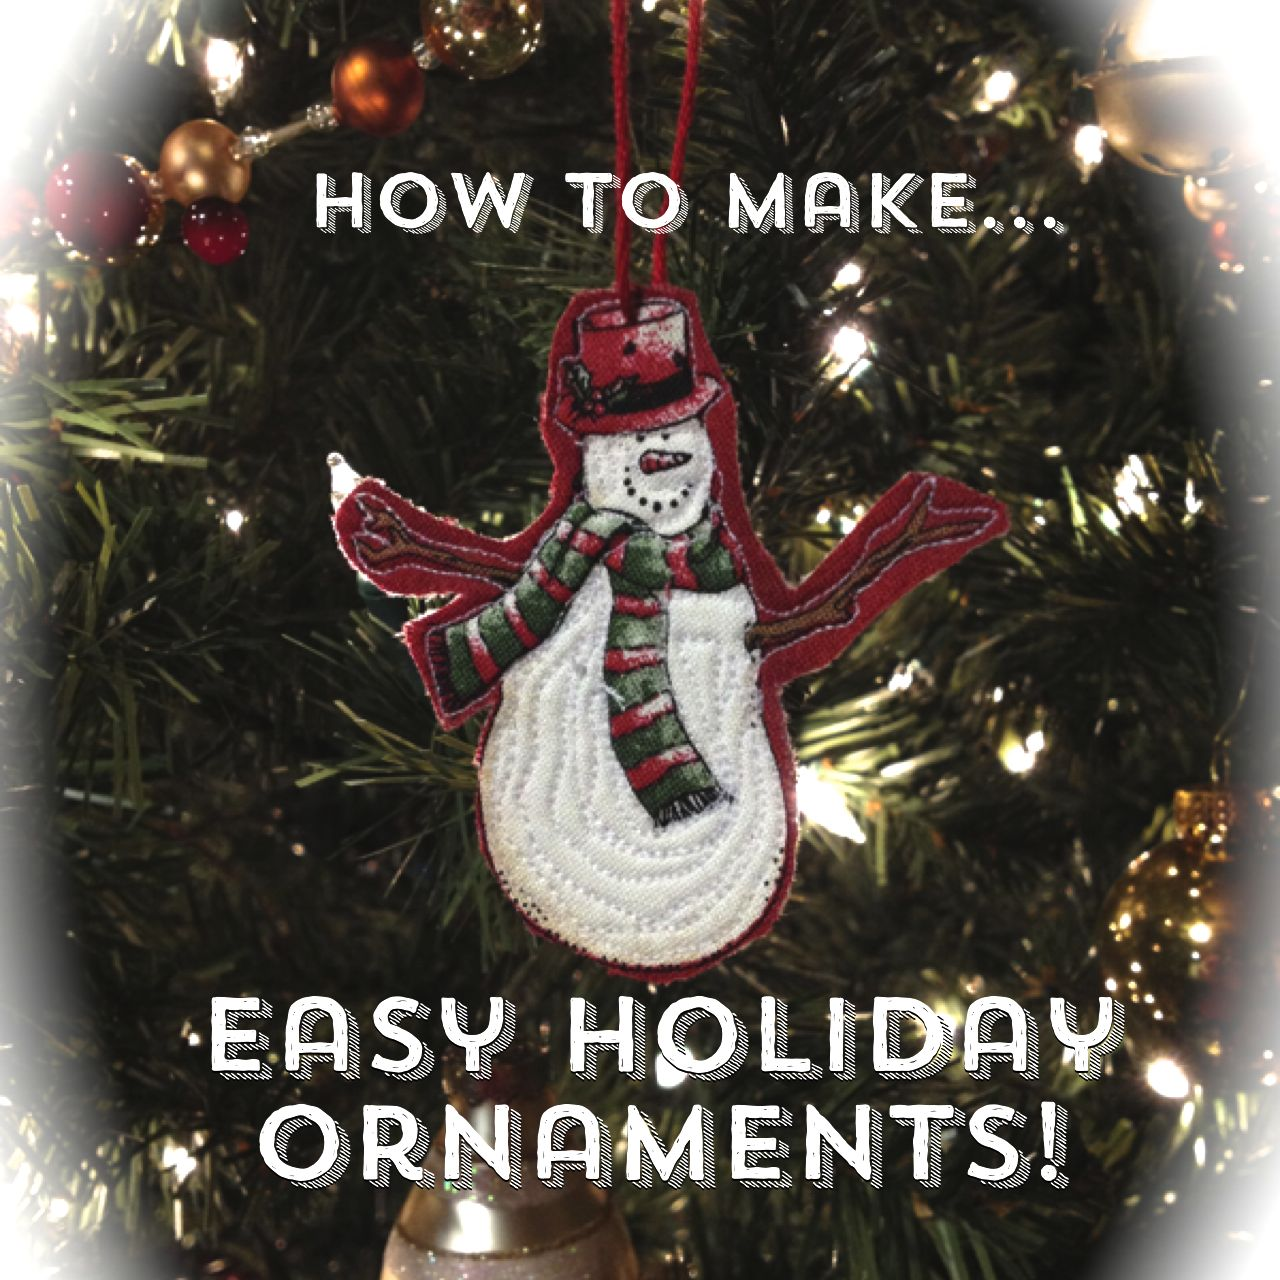 How To Make Easy Holiday Ornaments The Sassy Quilter